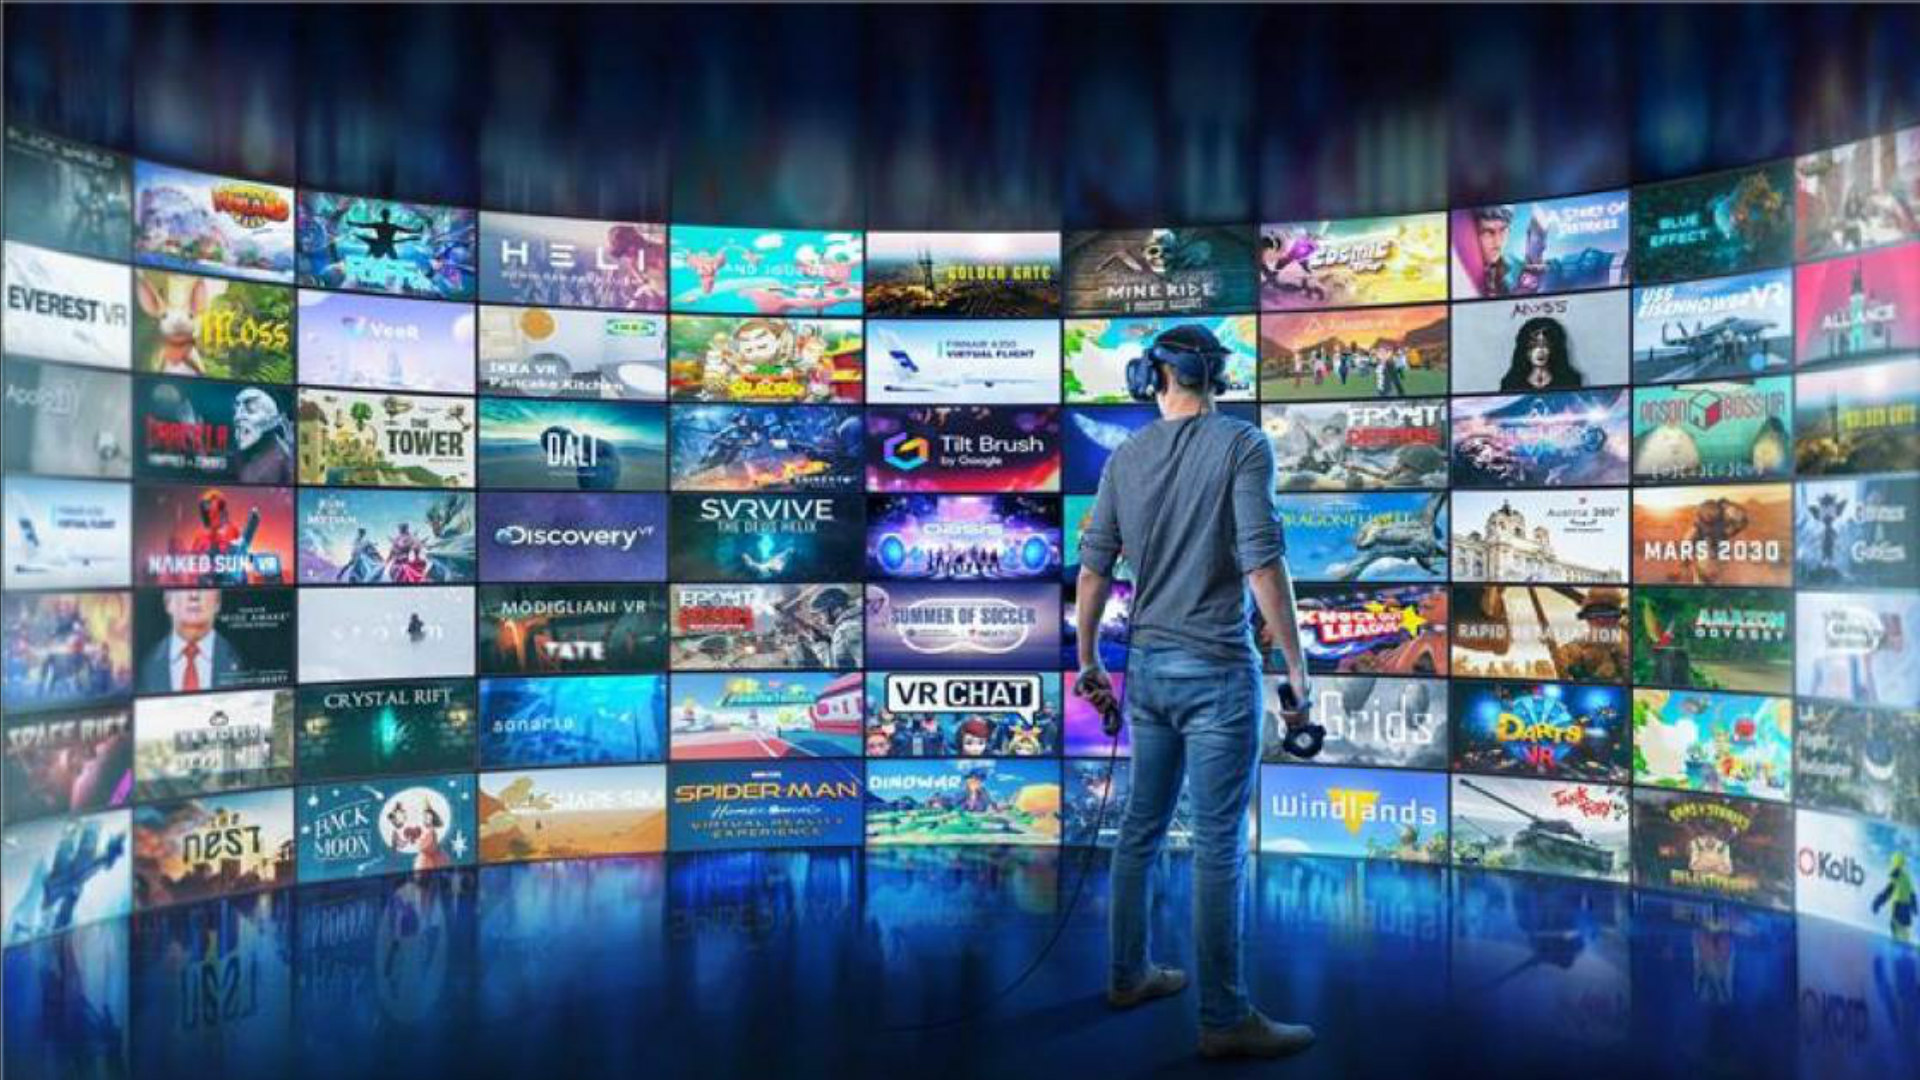 How To Get Access To Over 700 VR Games, Like Arizona Sunshine And Creed: Rise To Glory, For Free